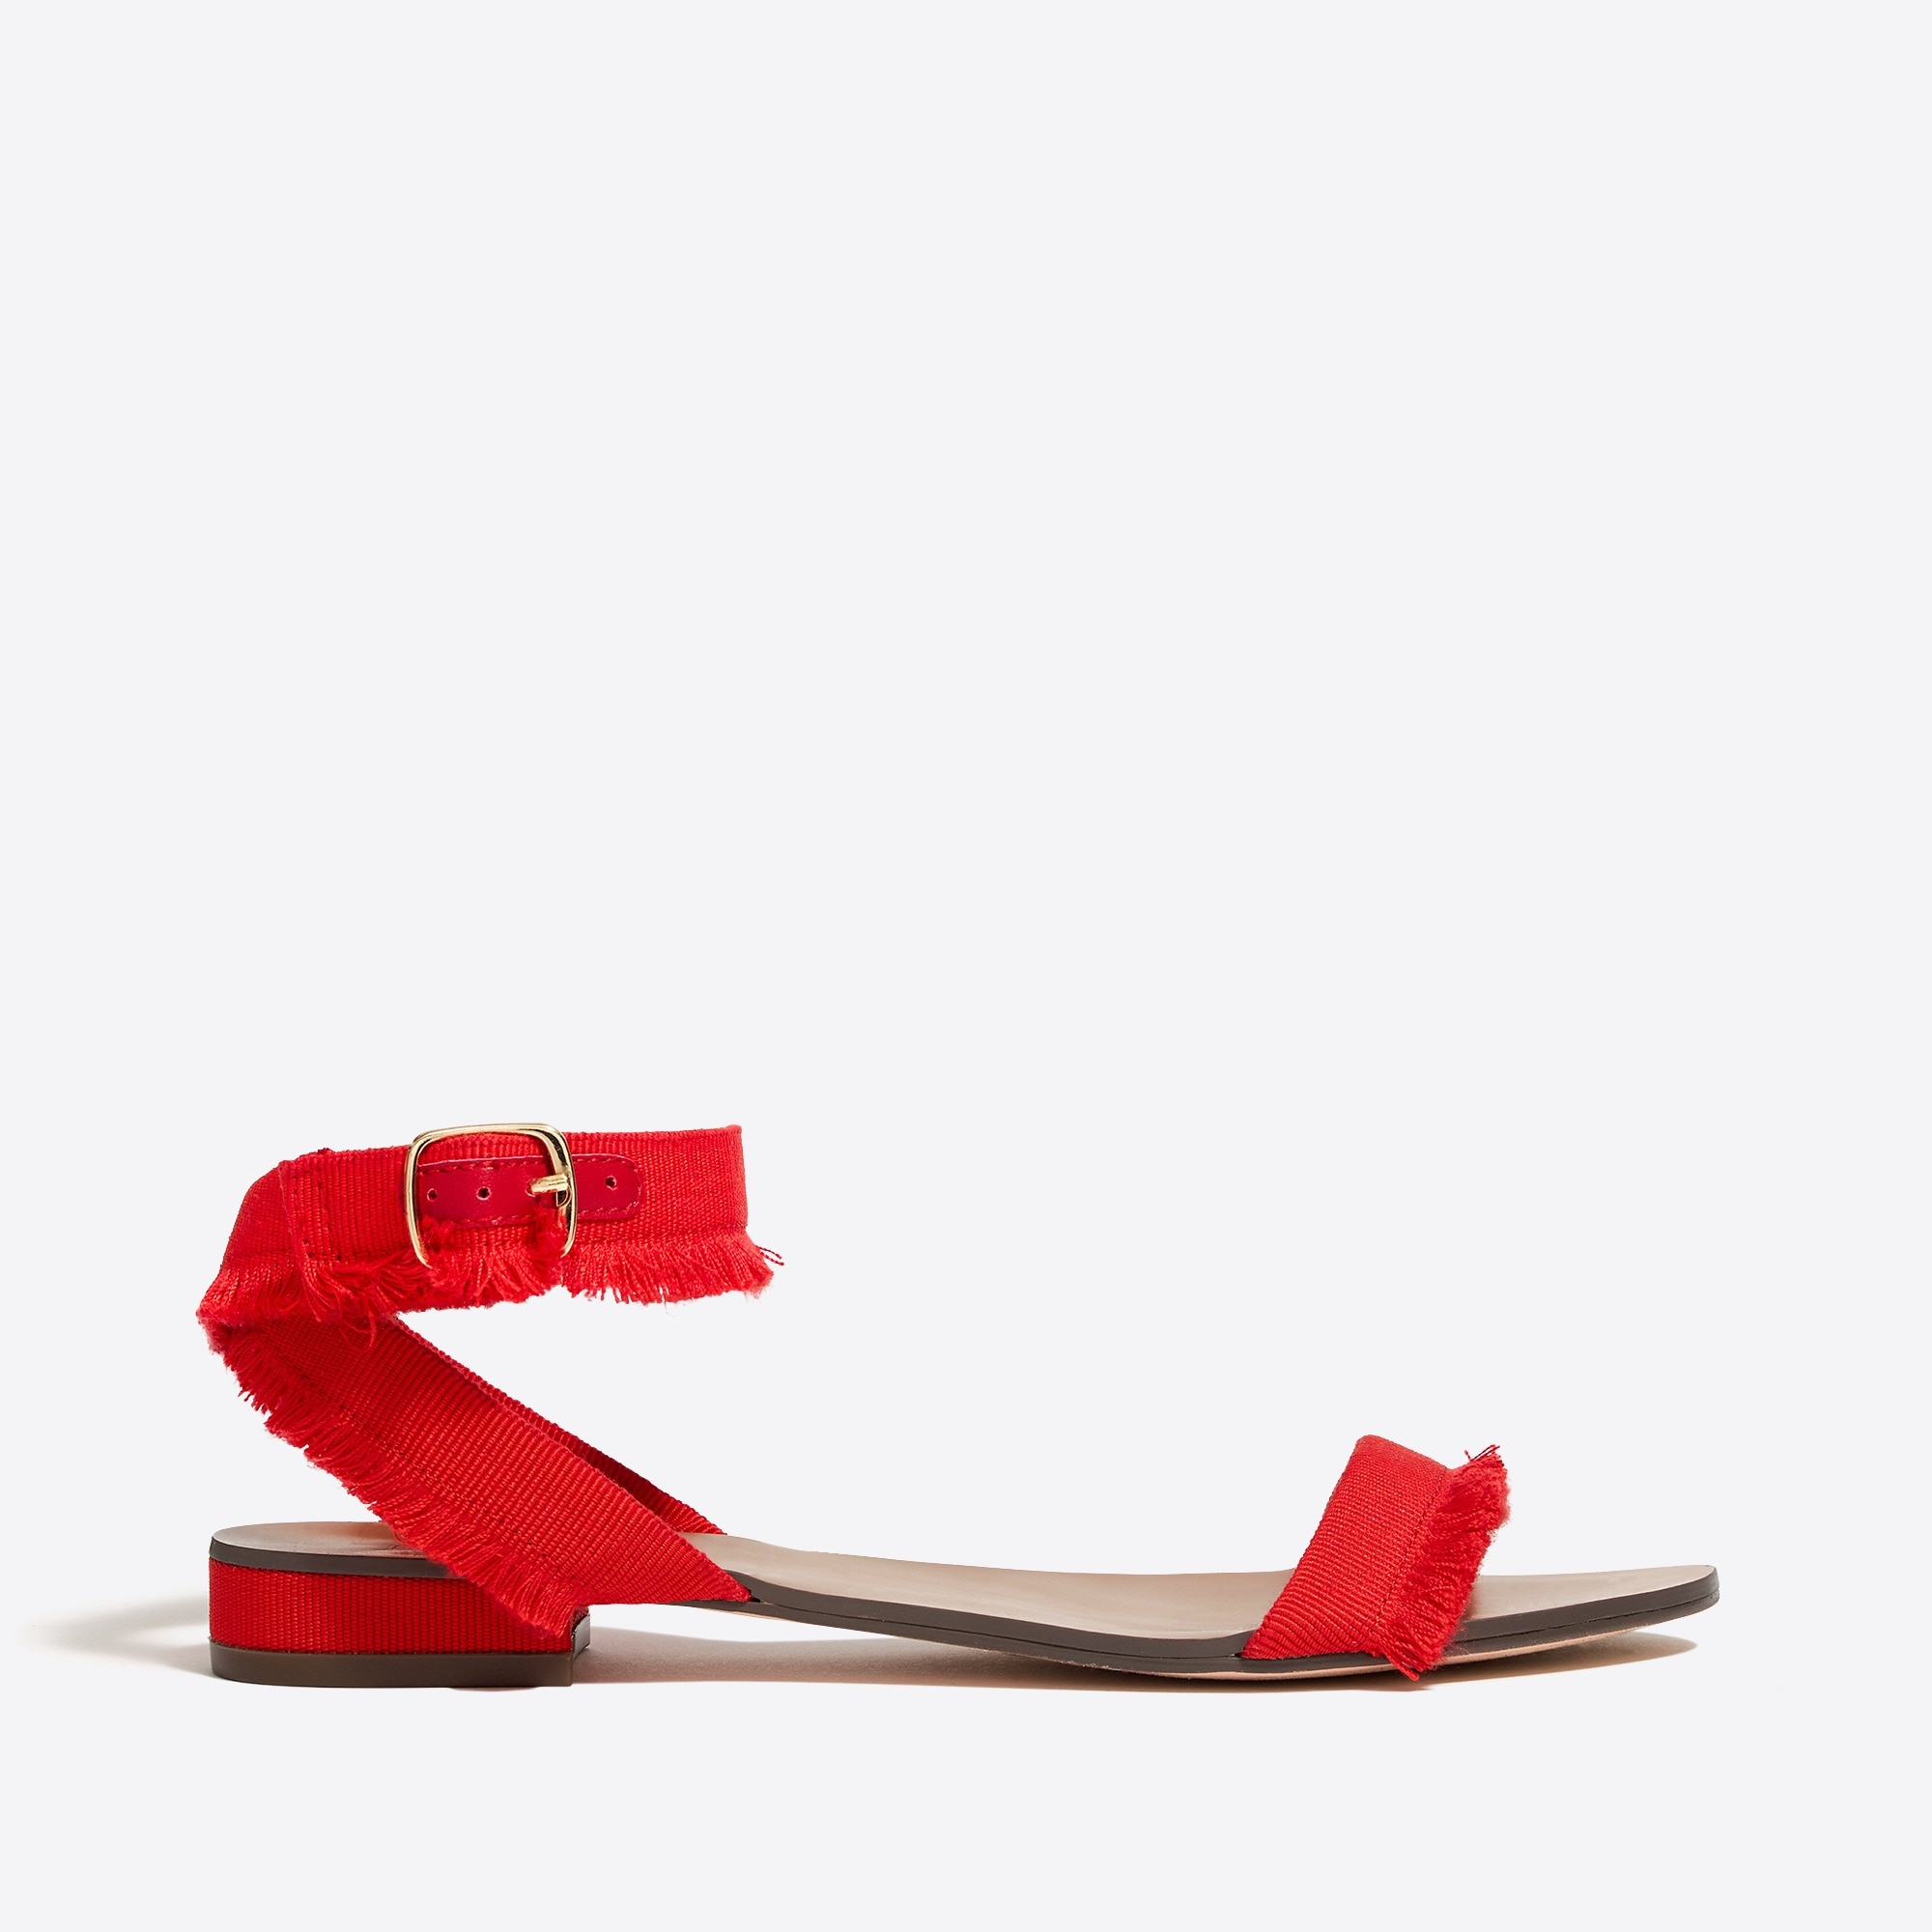 Image 3 for Raw-edge grosgrain sandals